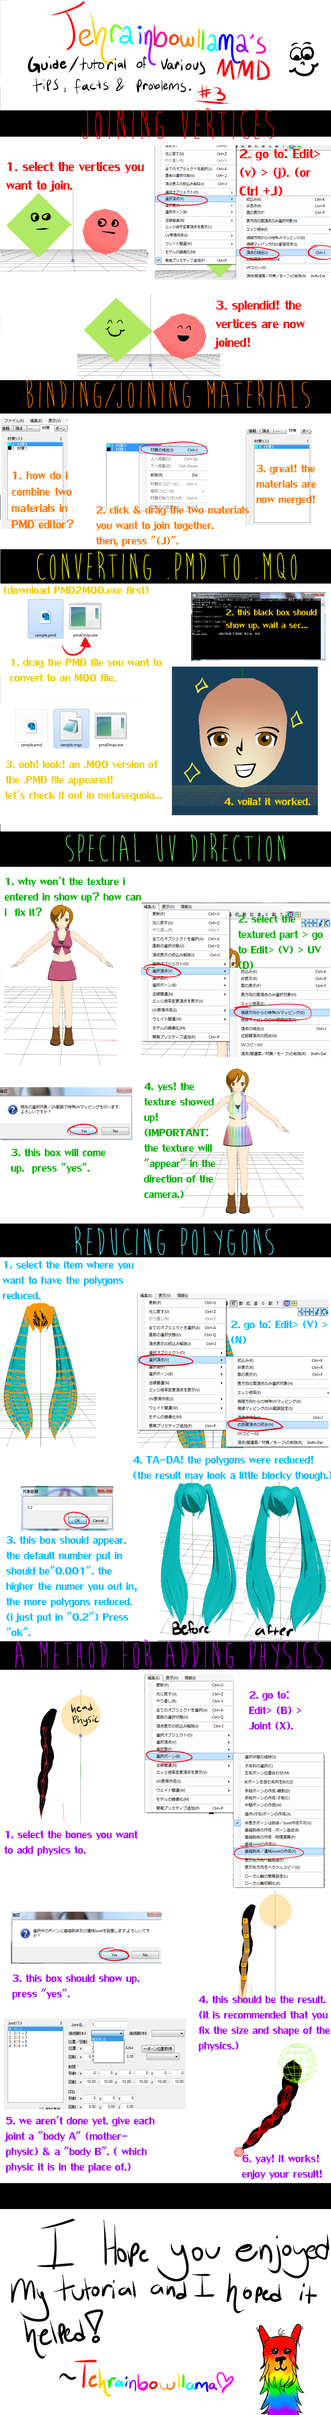 MMD guide to tips, facts and  problems #3 by Tehrainbowllama